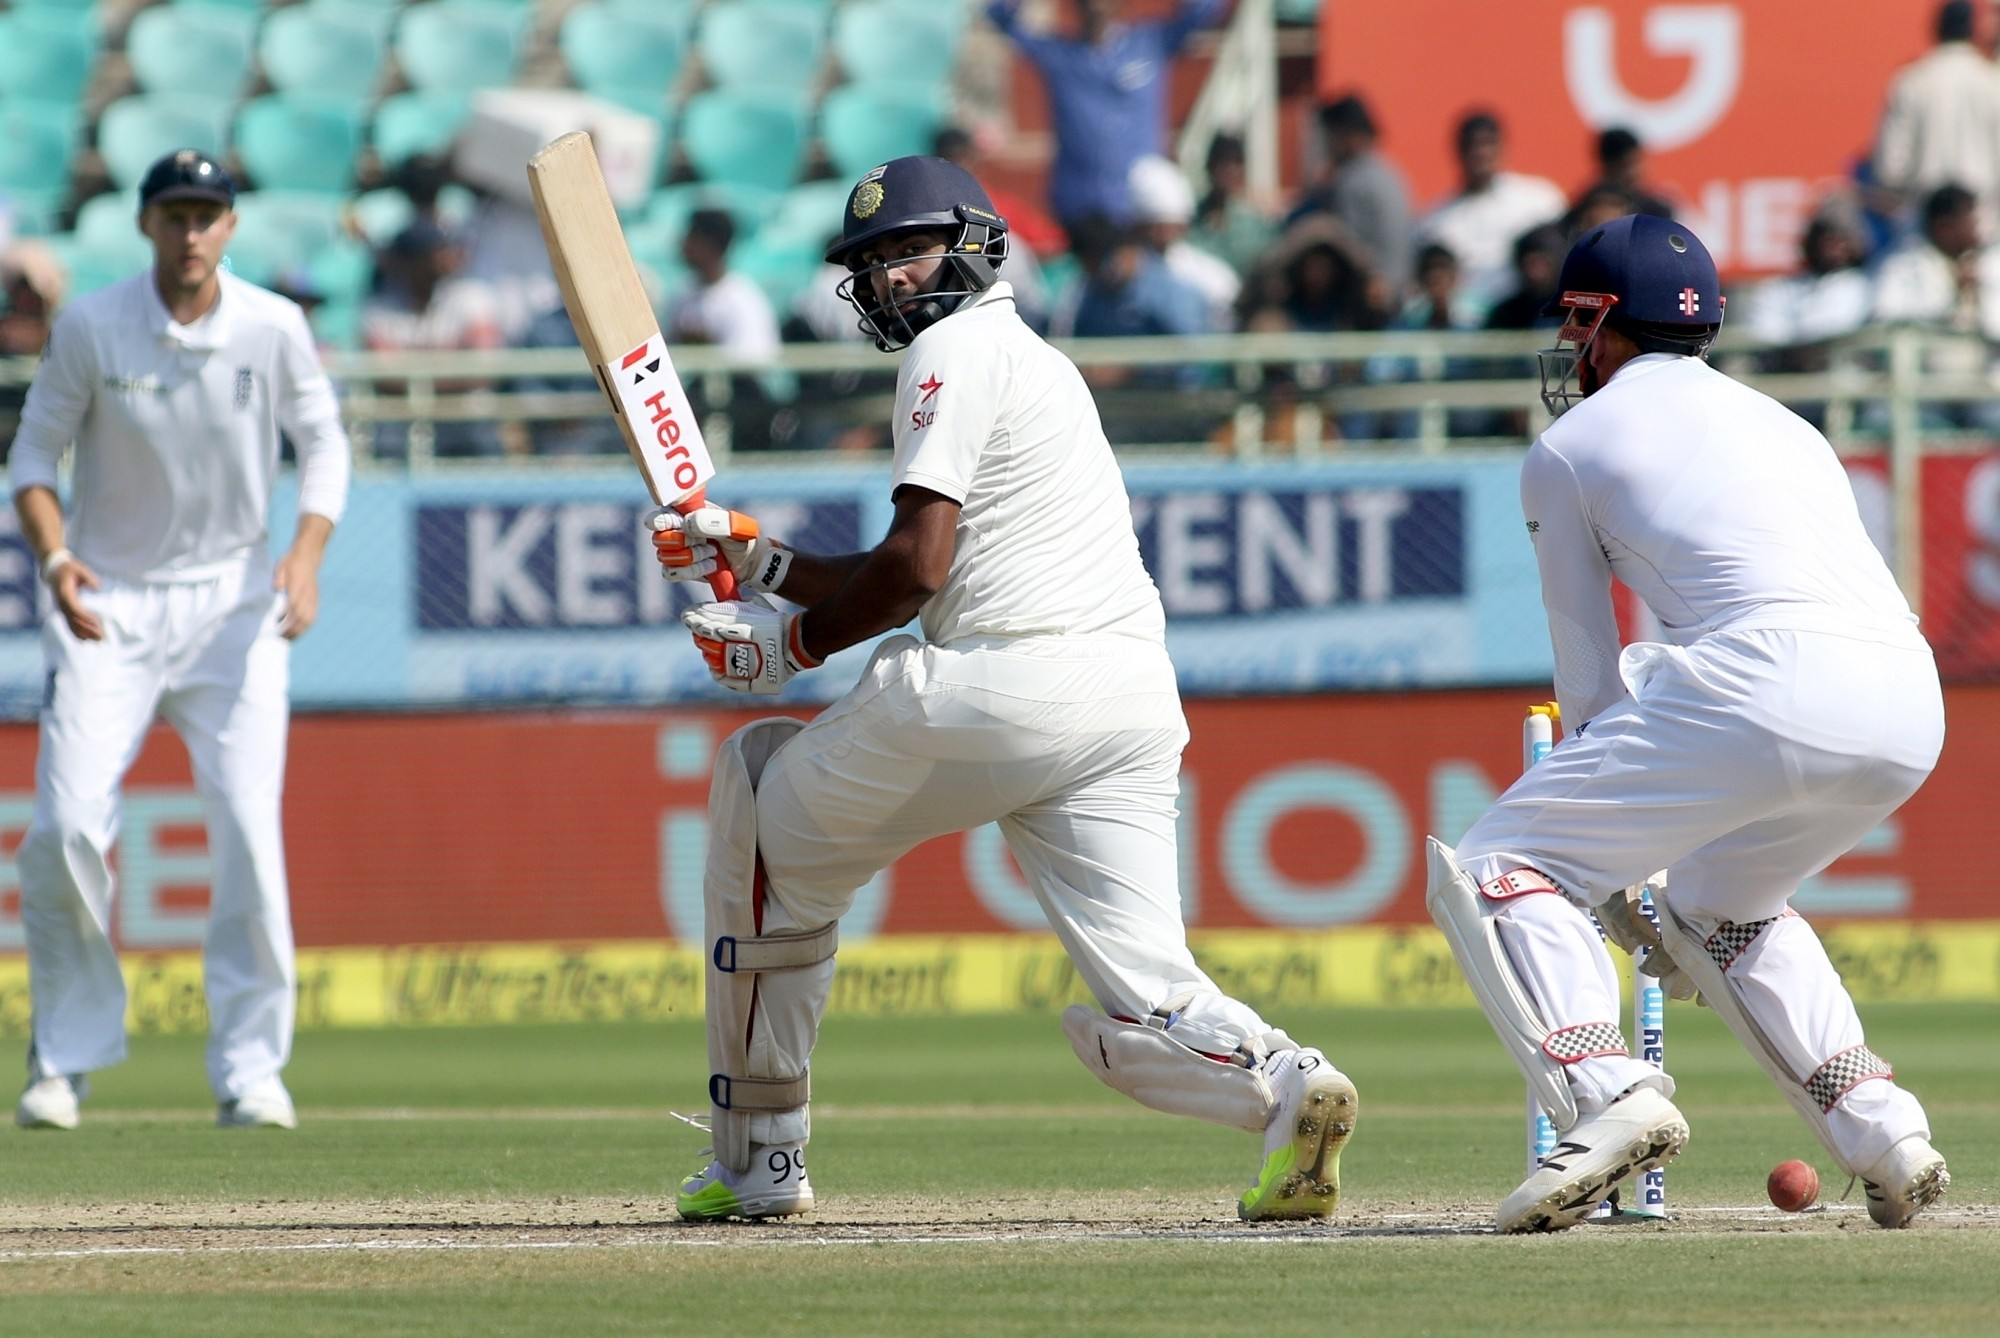 It was also the year when R Ashwin, the all-rounder, was born (Image credit: IANS)